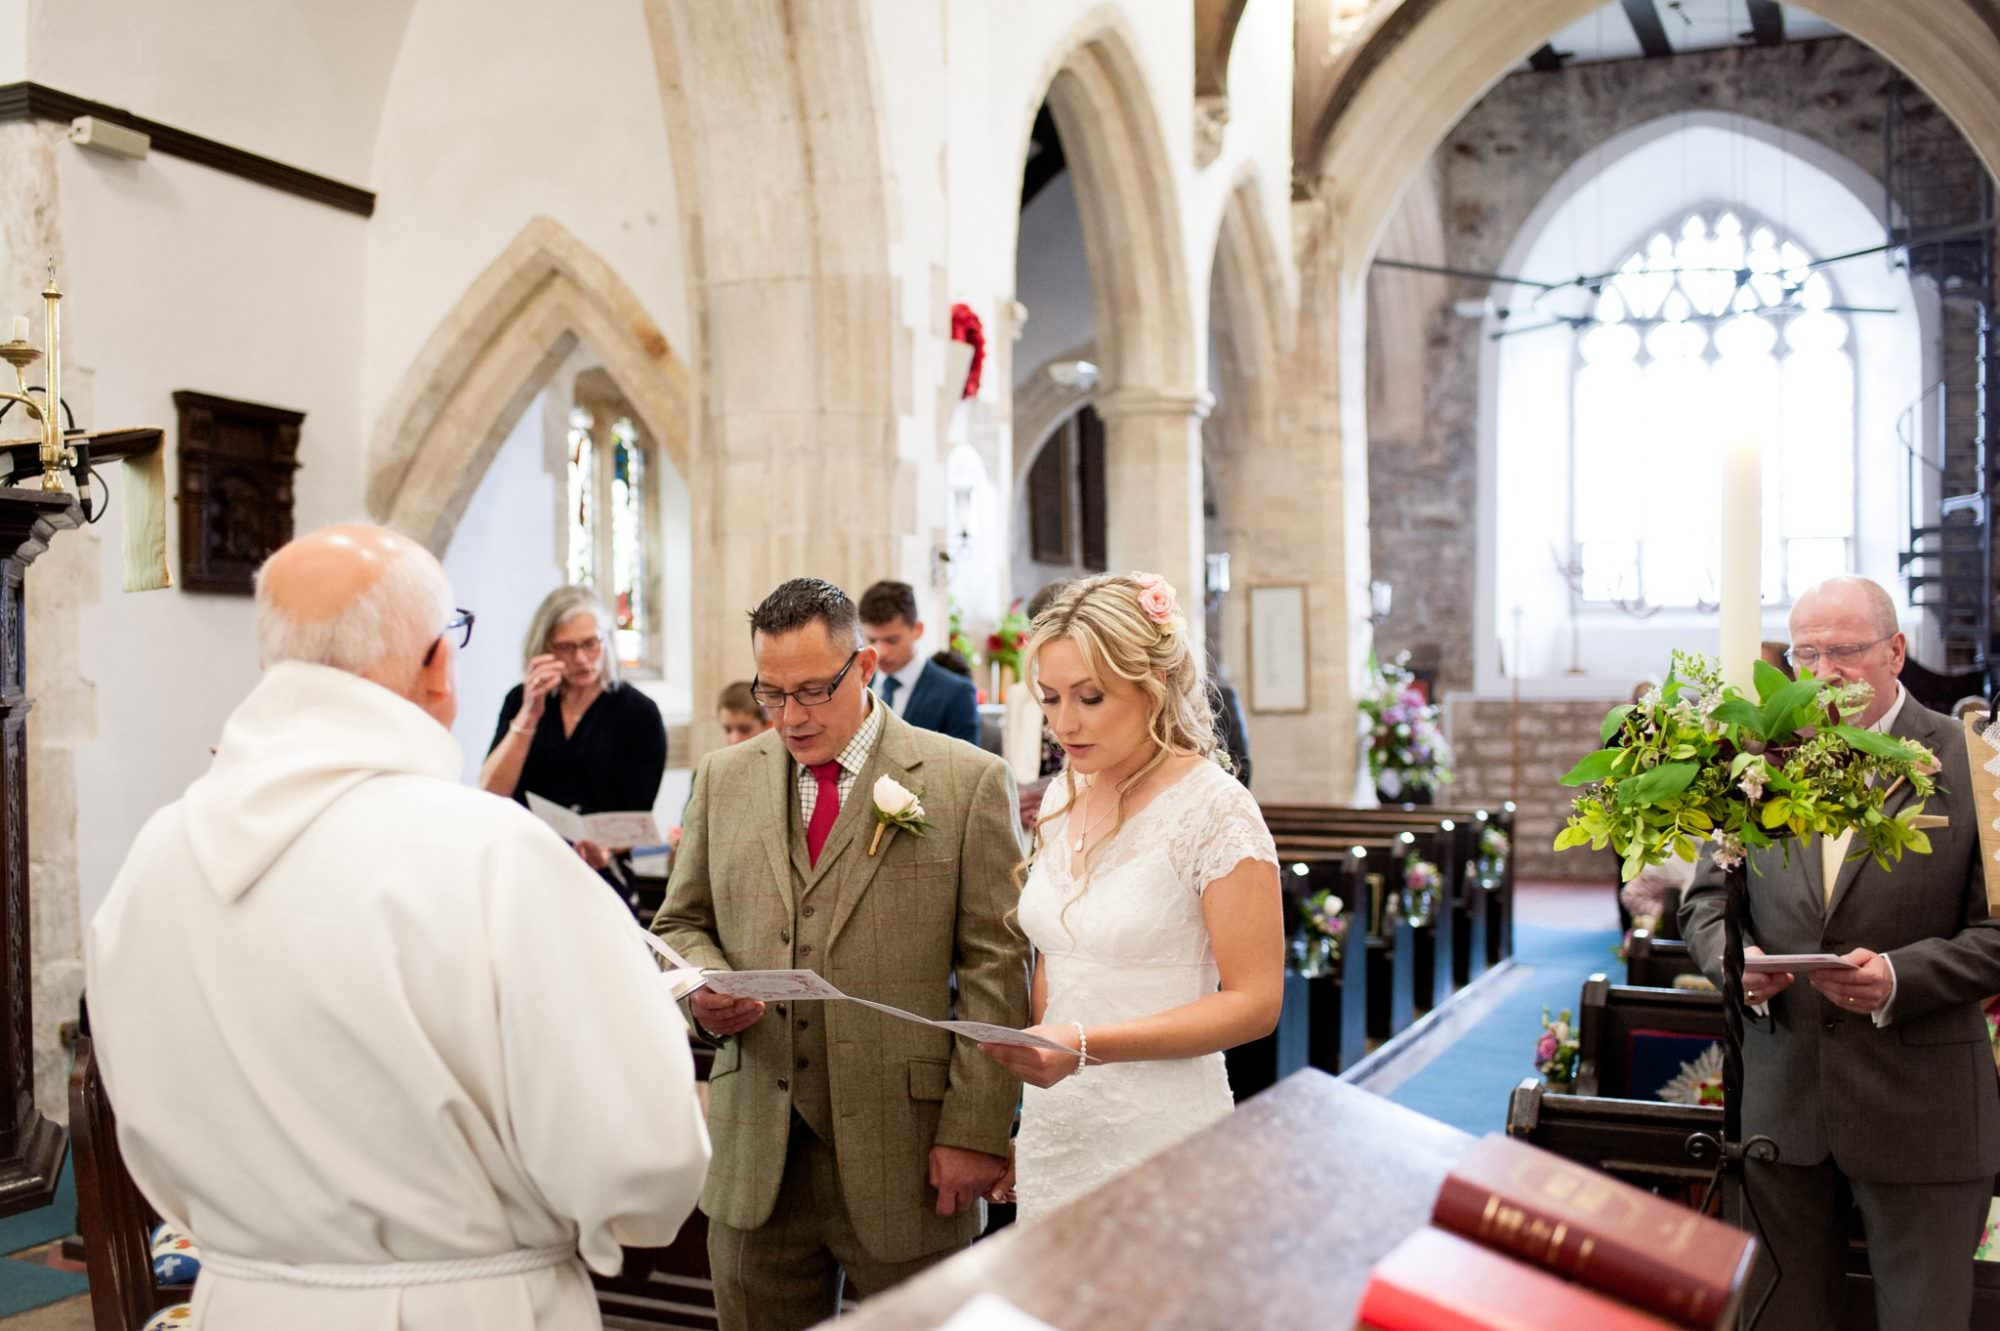 Wedding Ceremony at Sopley Church in Dorset